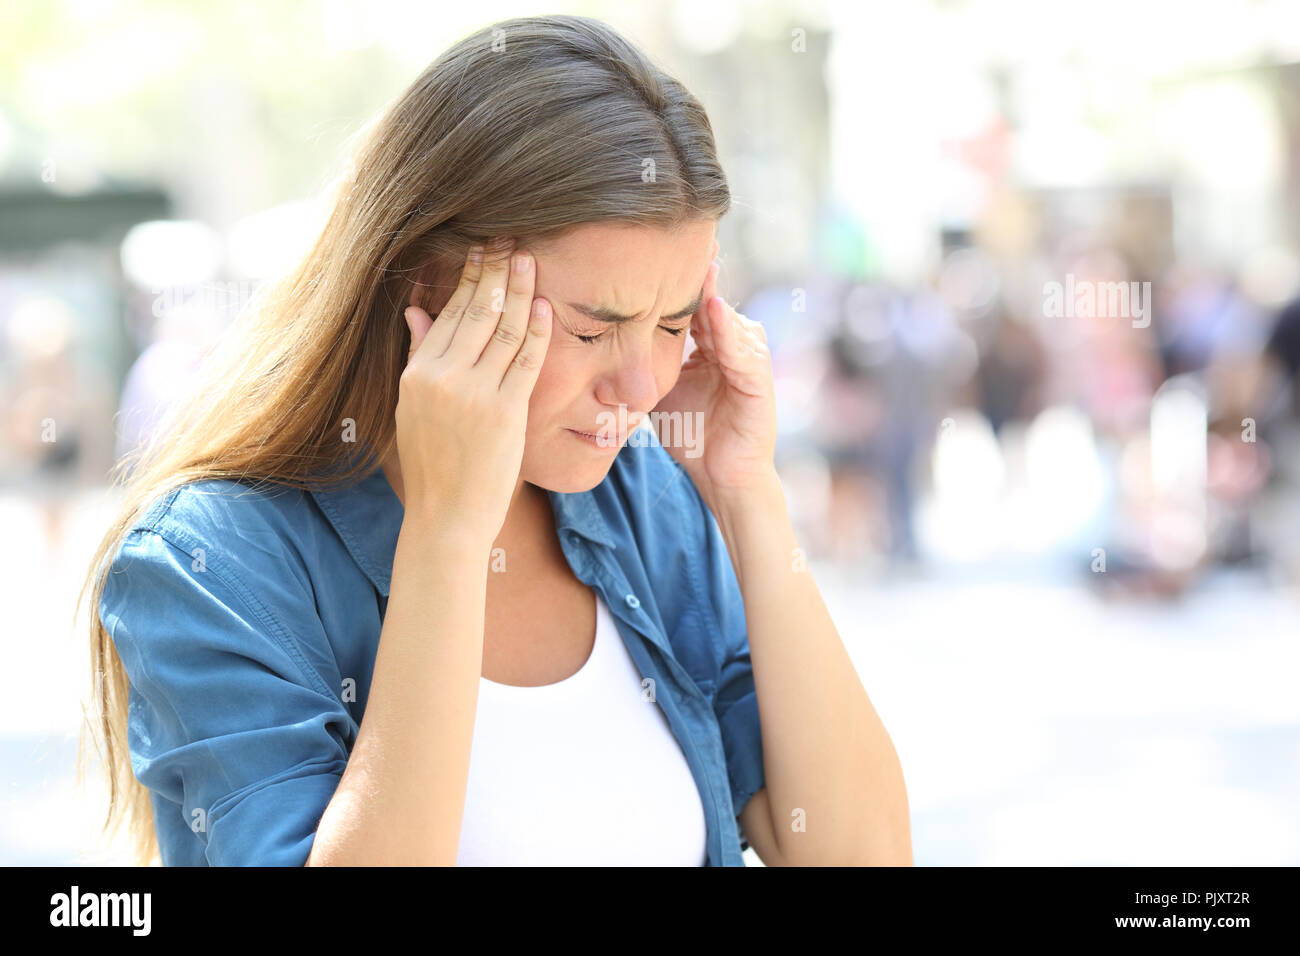 Painful girl suffering migraine touching temple in the street - Stock Image